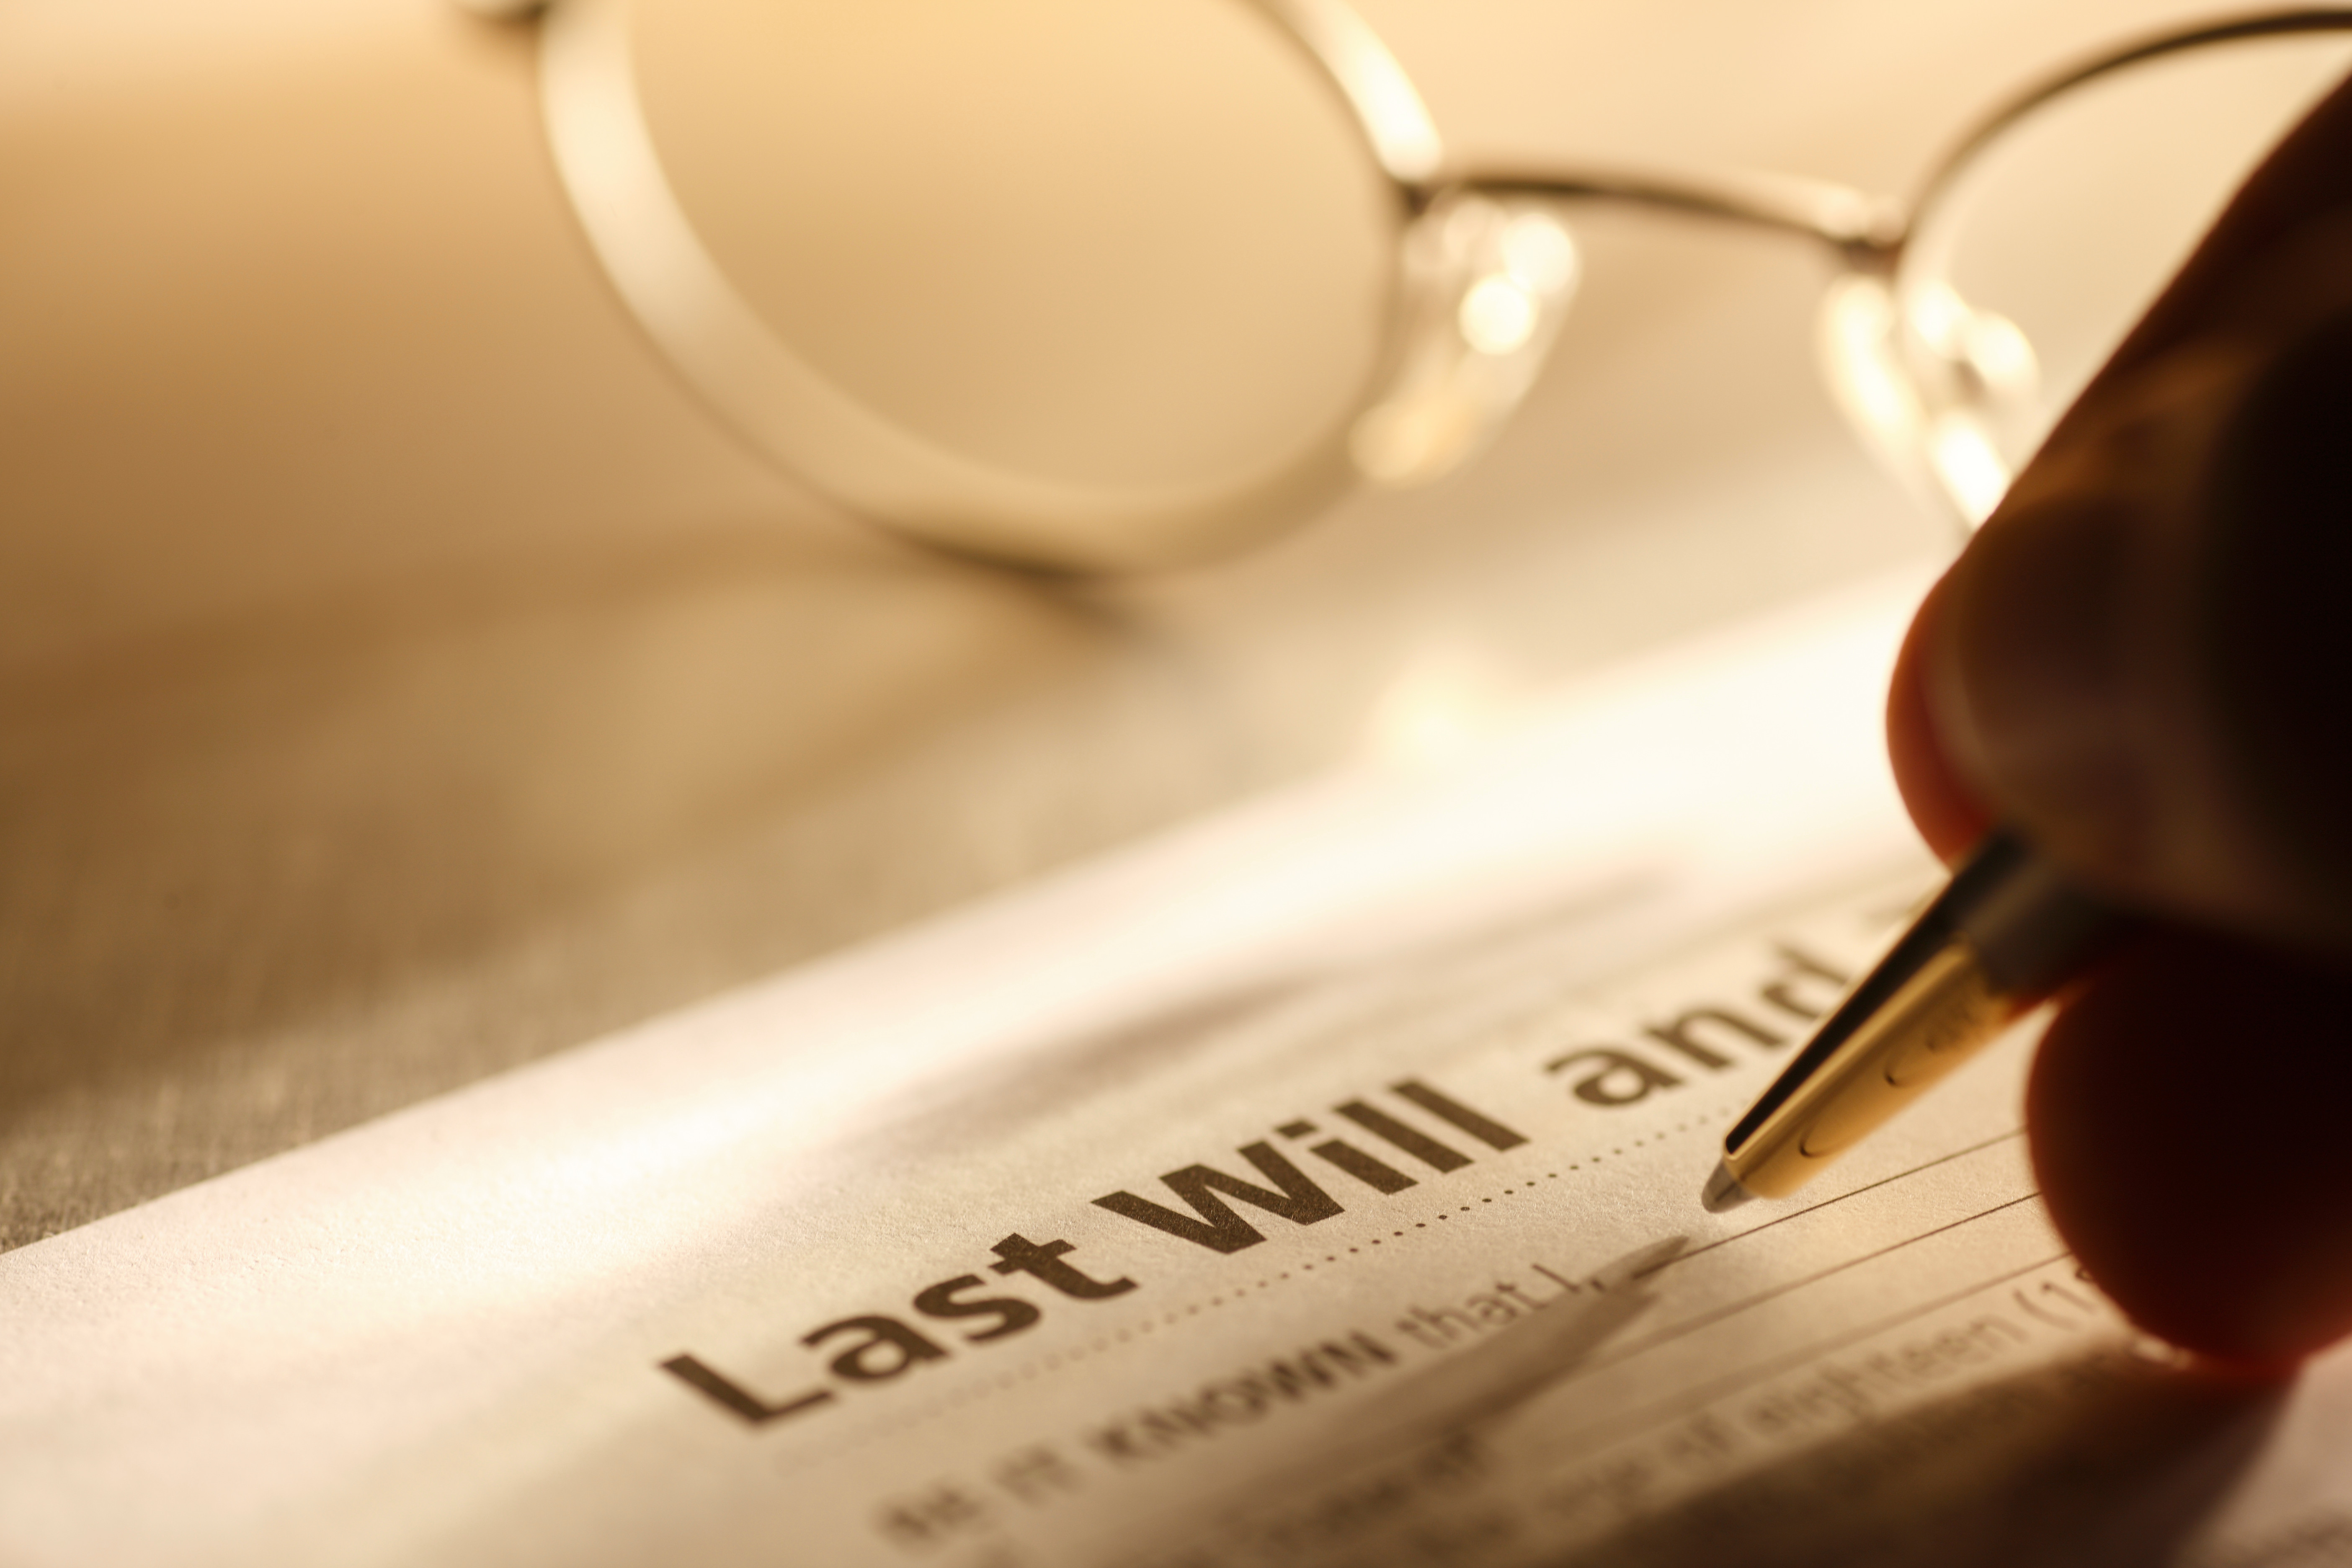 Wills are hugely important, as without them your estate could pass to the wrong person